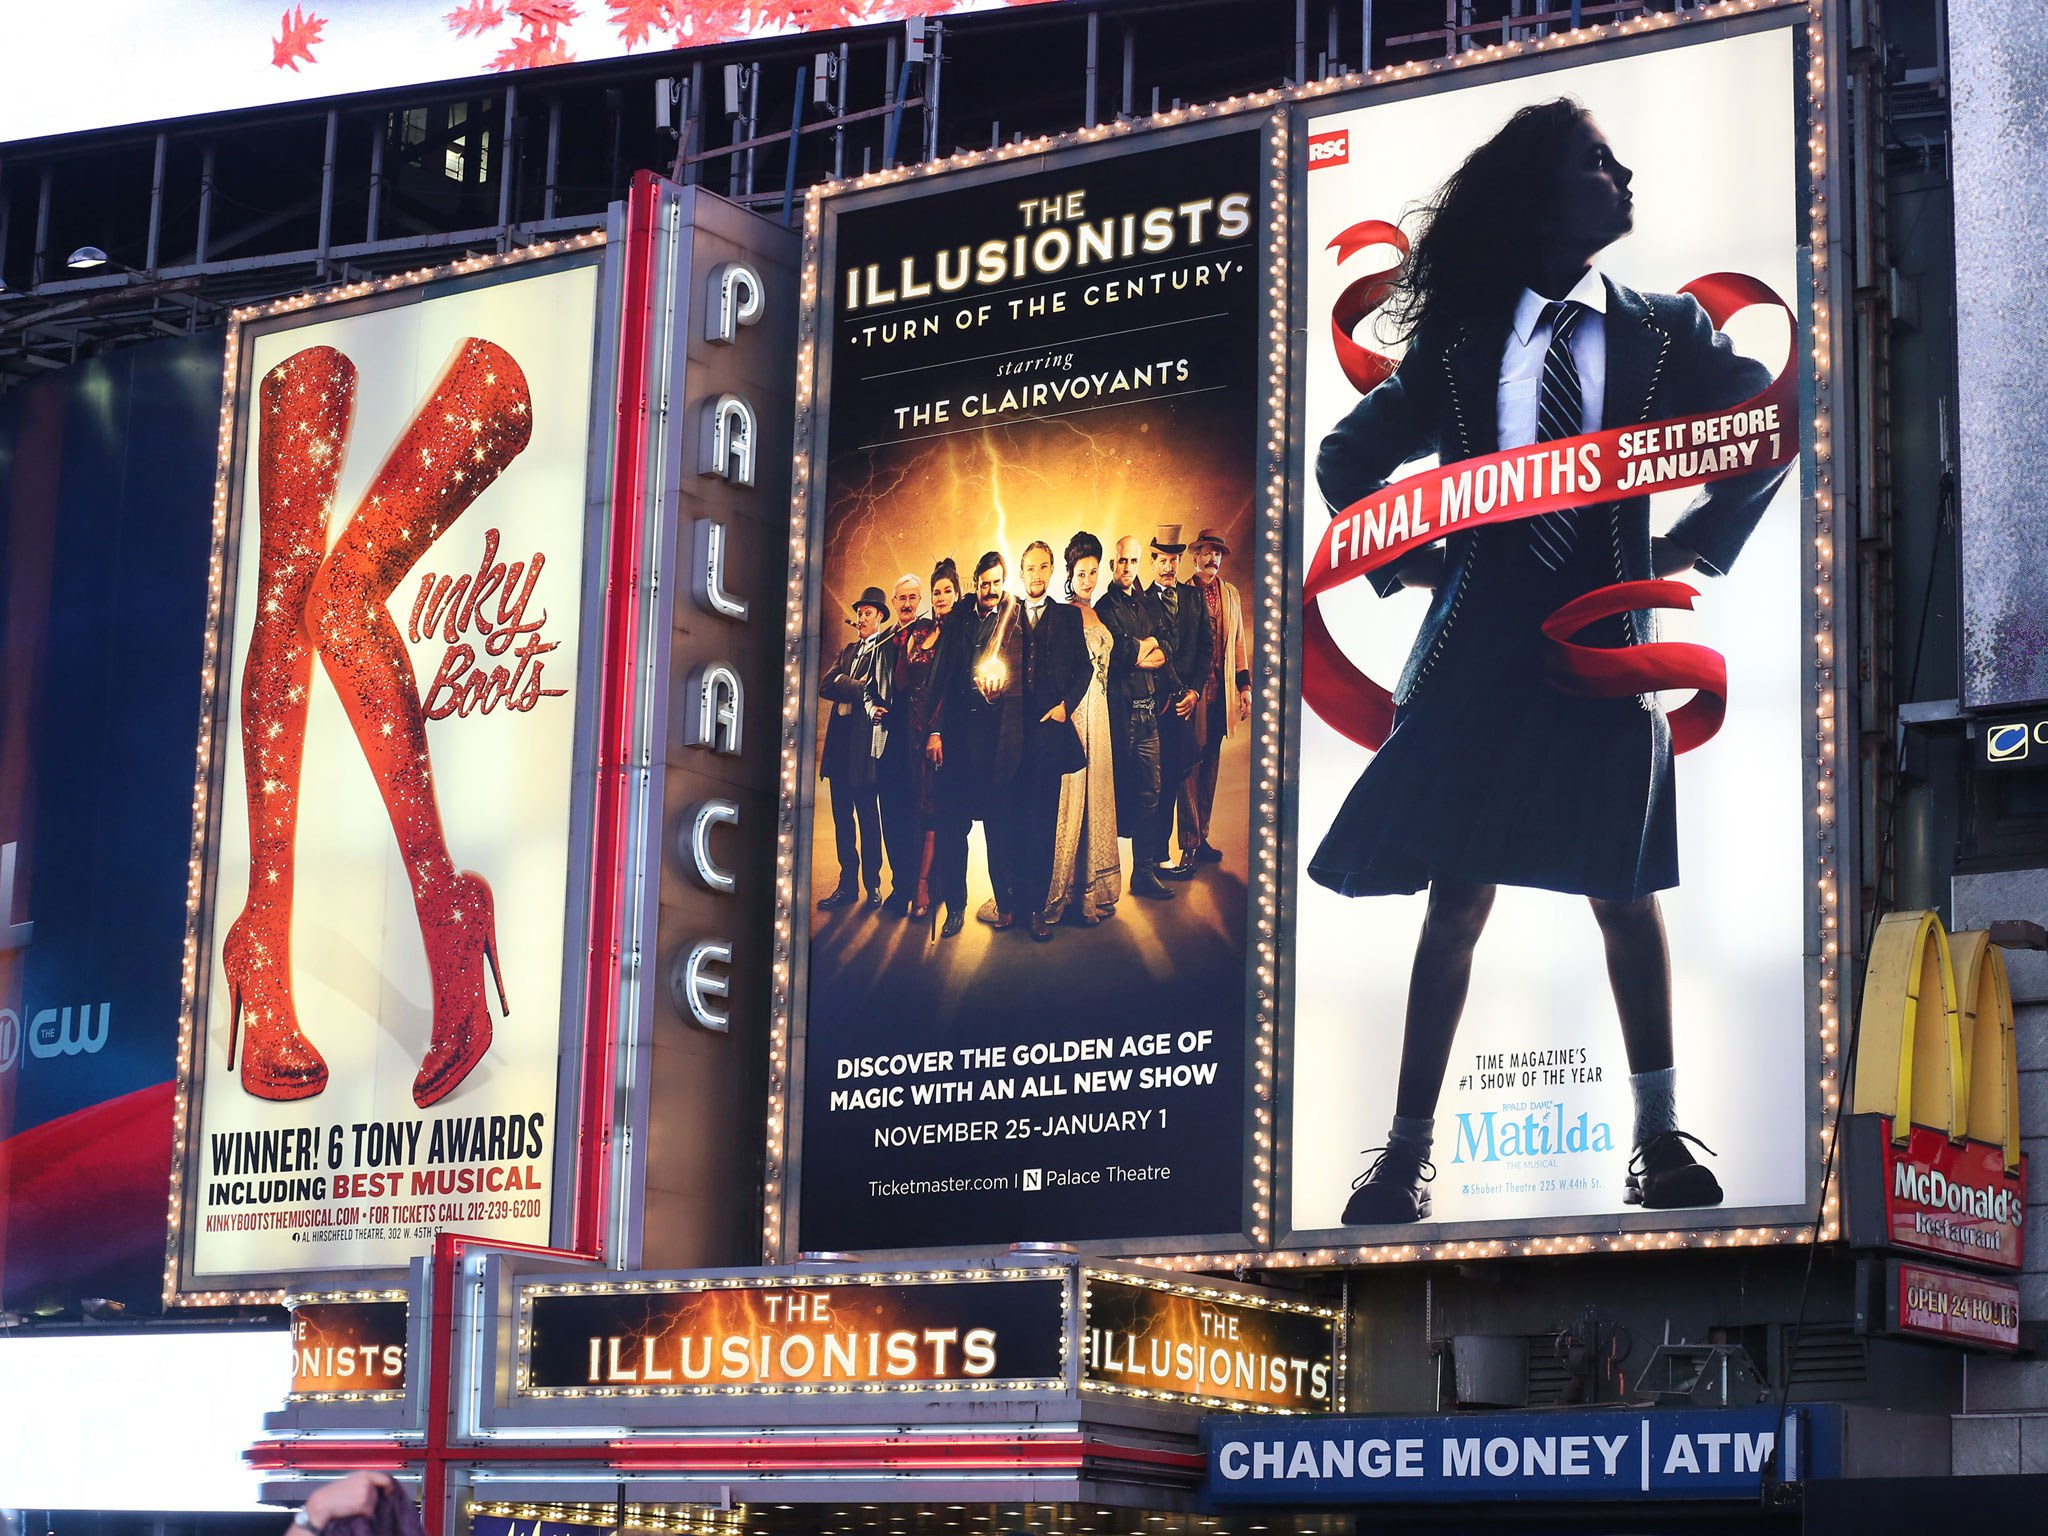 The Illusionists: Turn of the Century (2016) Marquee